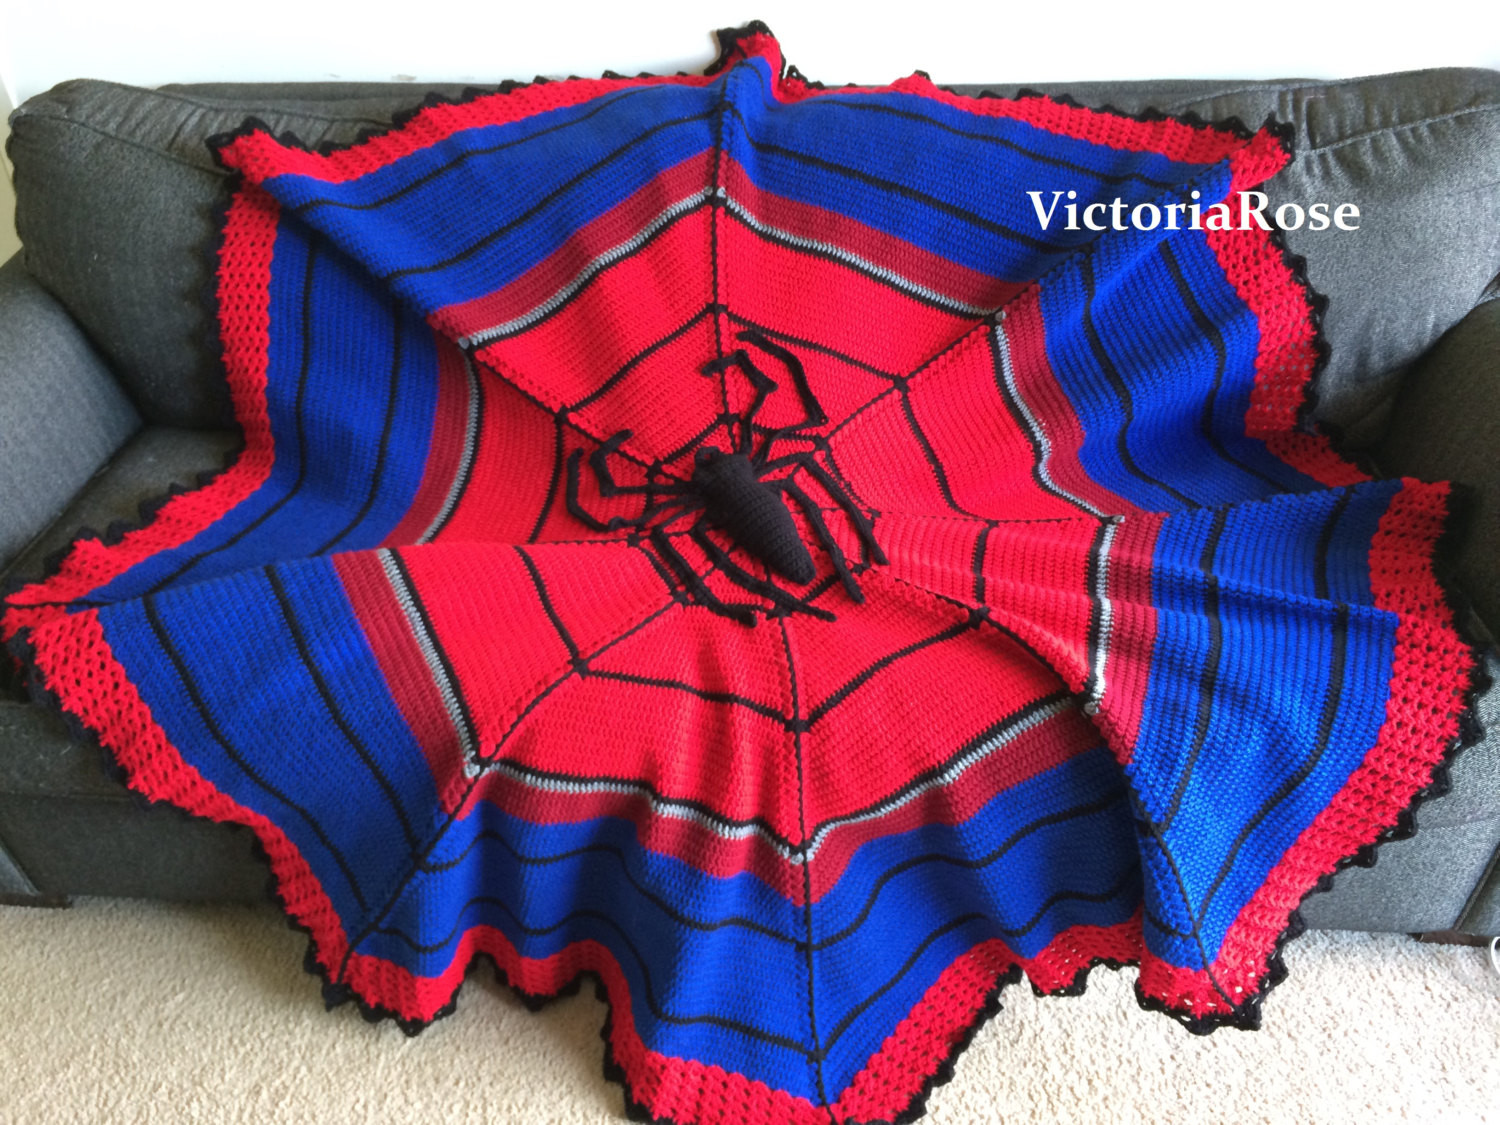 Spiderman Crochet Blanket Awesome Crochet Spiderman Blanket Pattern Ly Of Wonderful 42 Pictures Spiderman Crochet Blanket